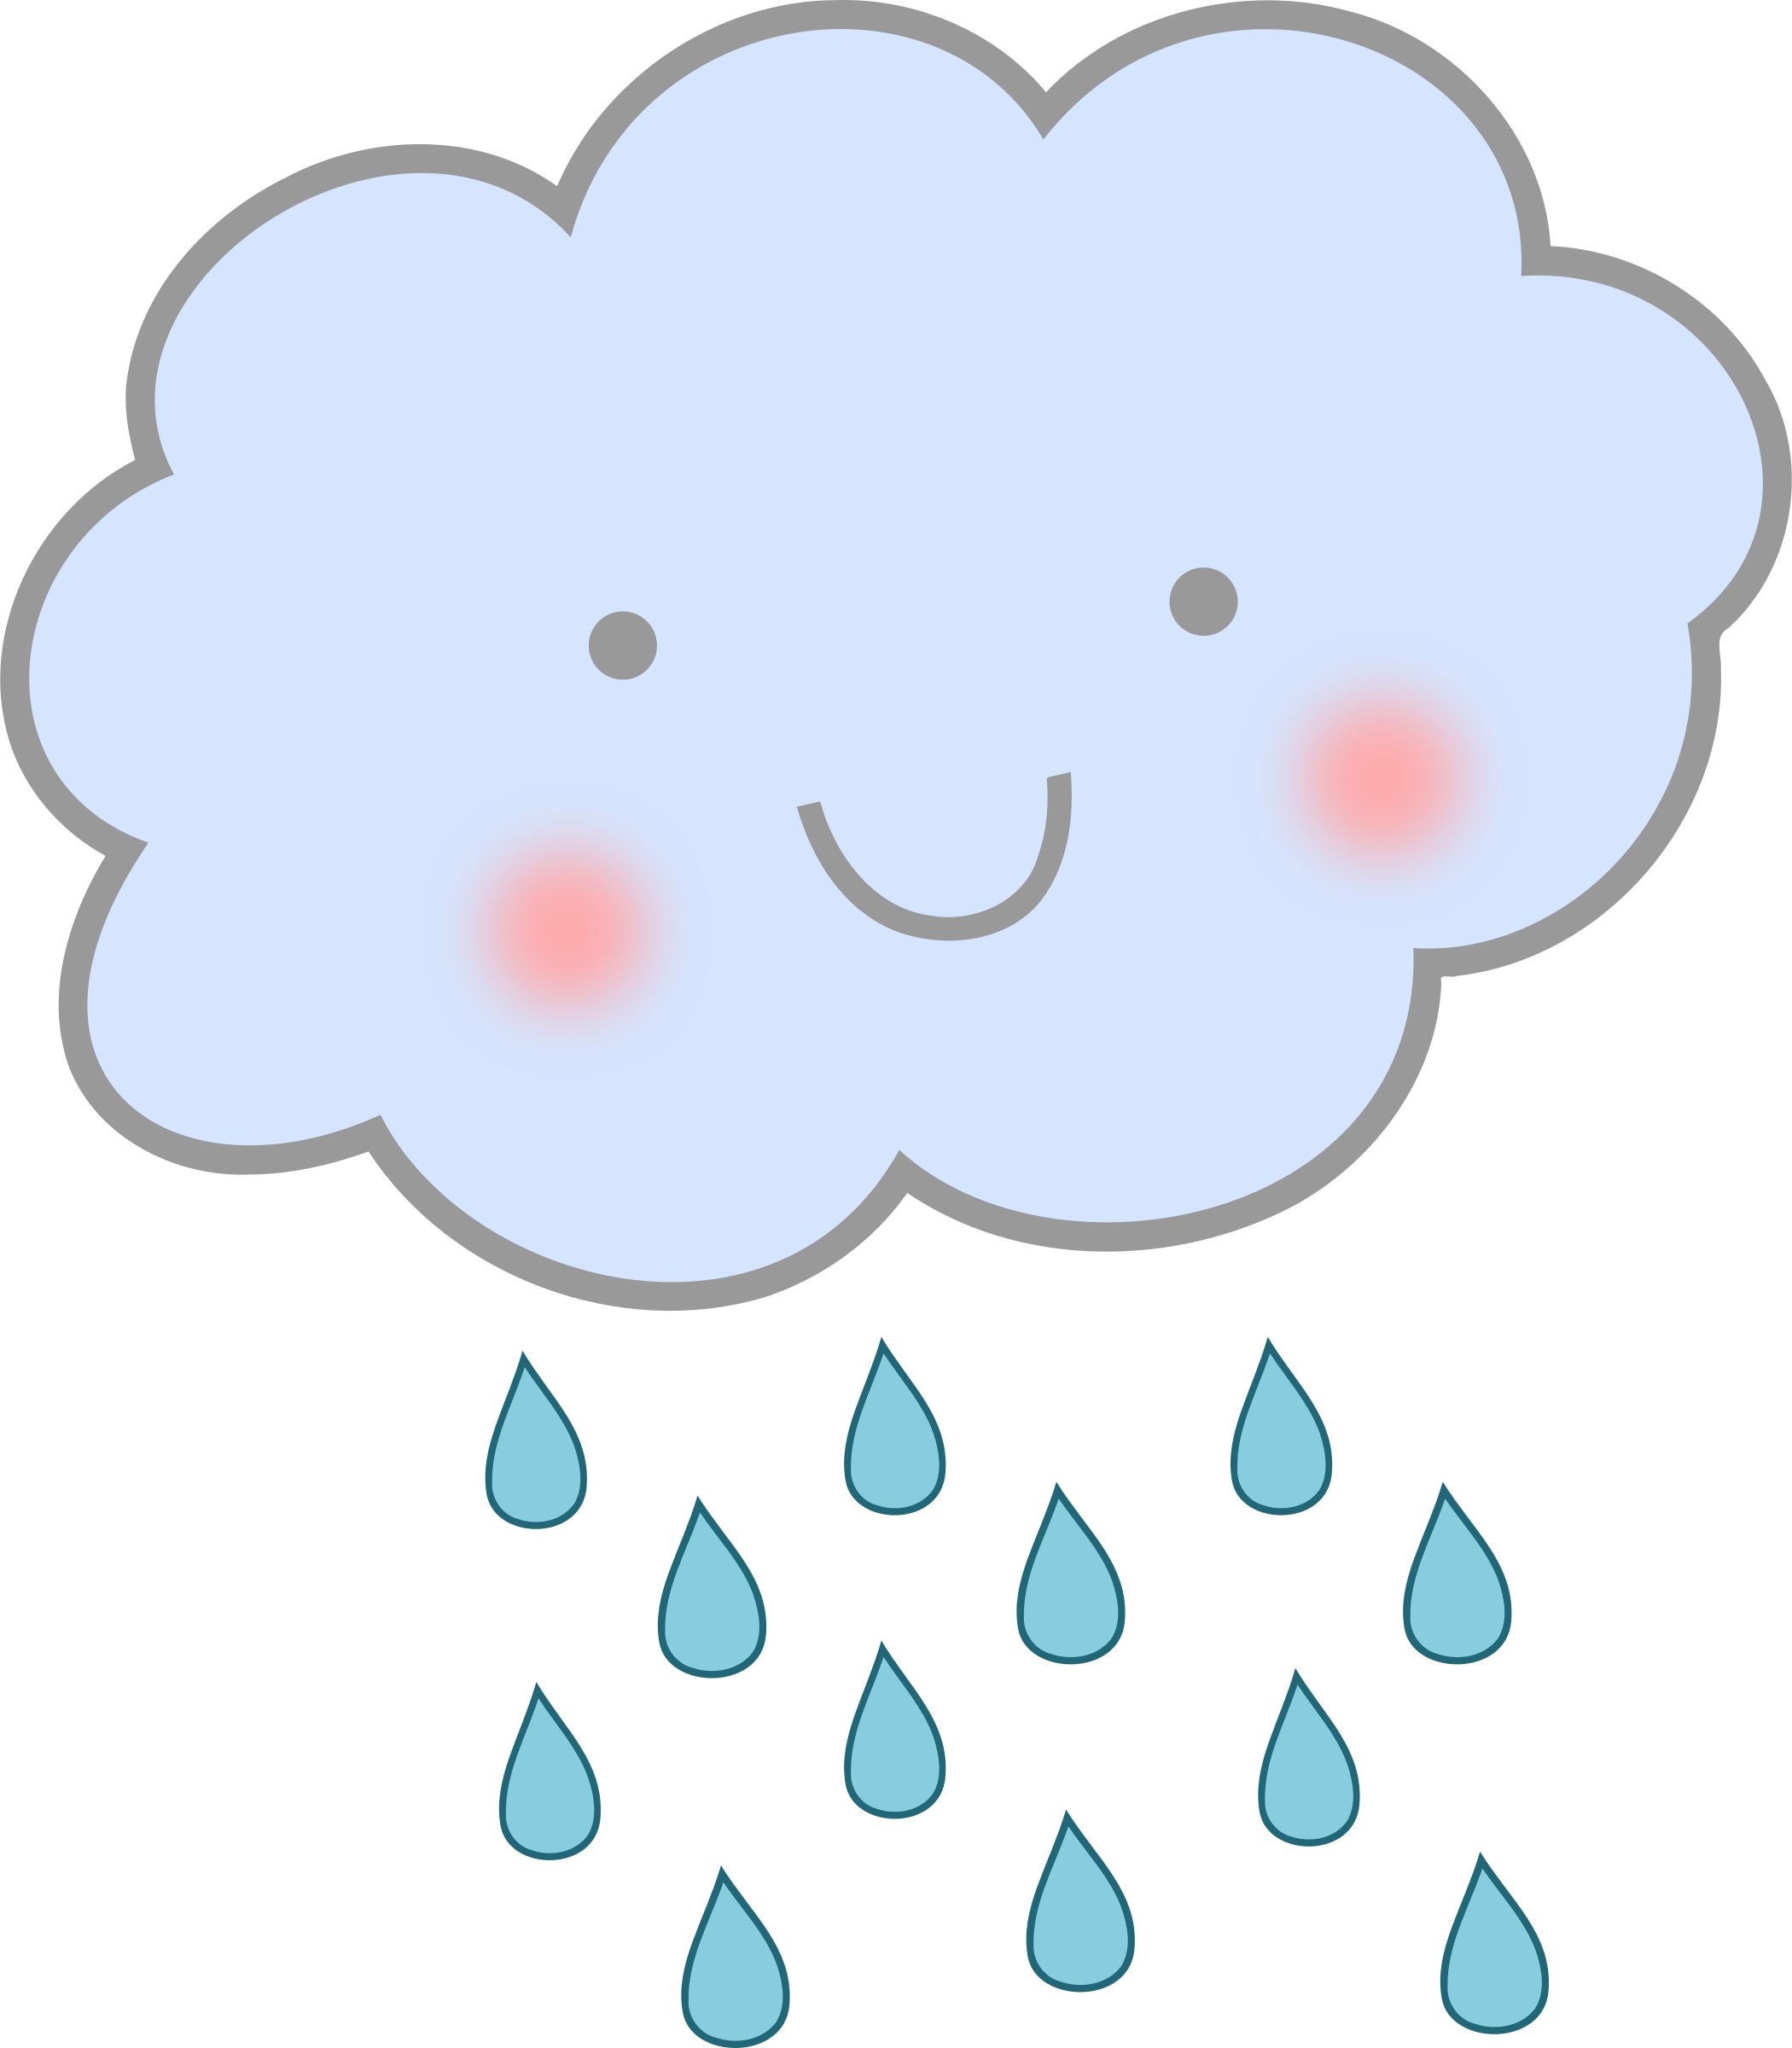 Cute Rain Cloud by uroesch